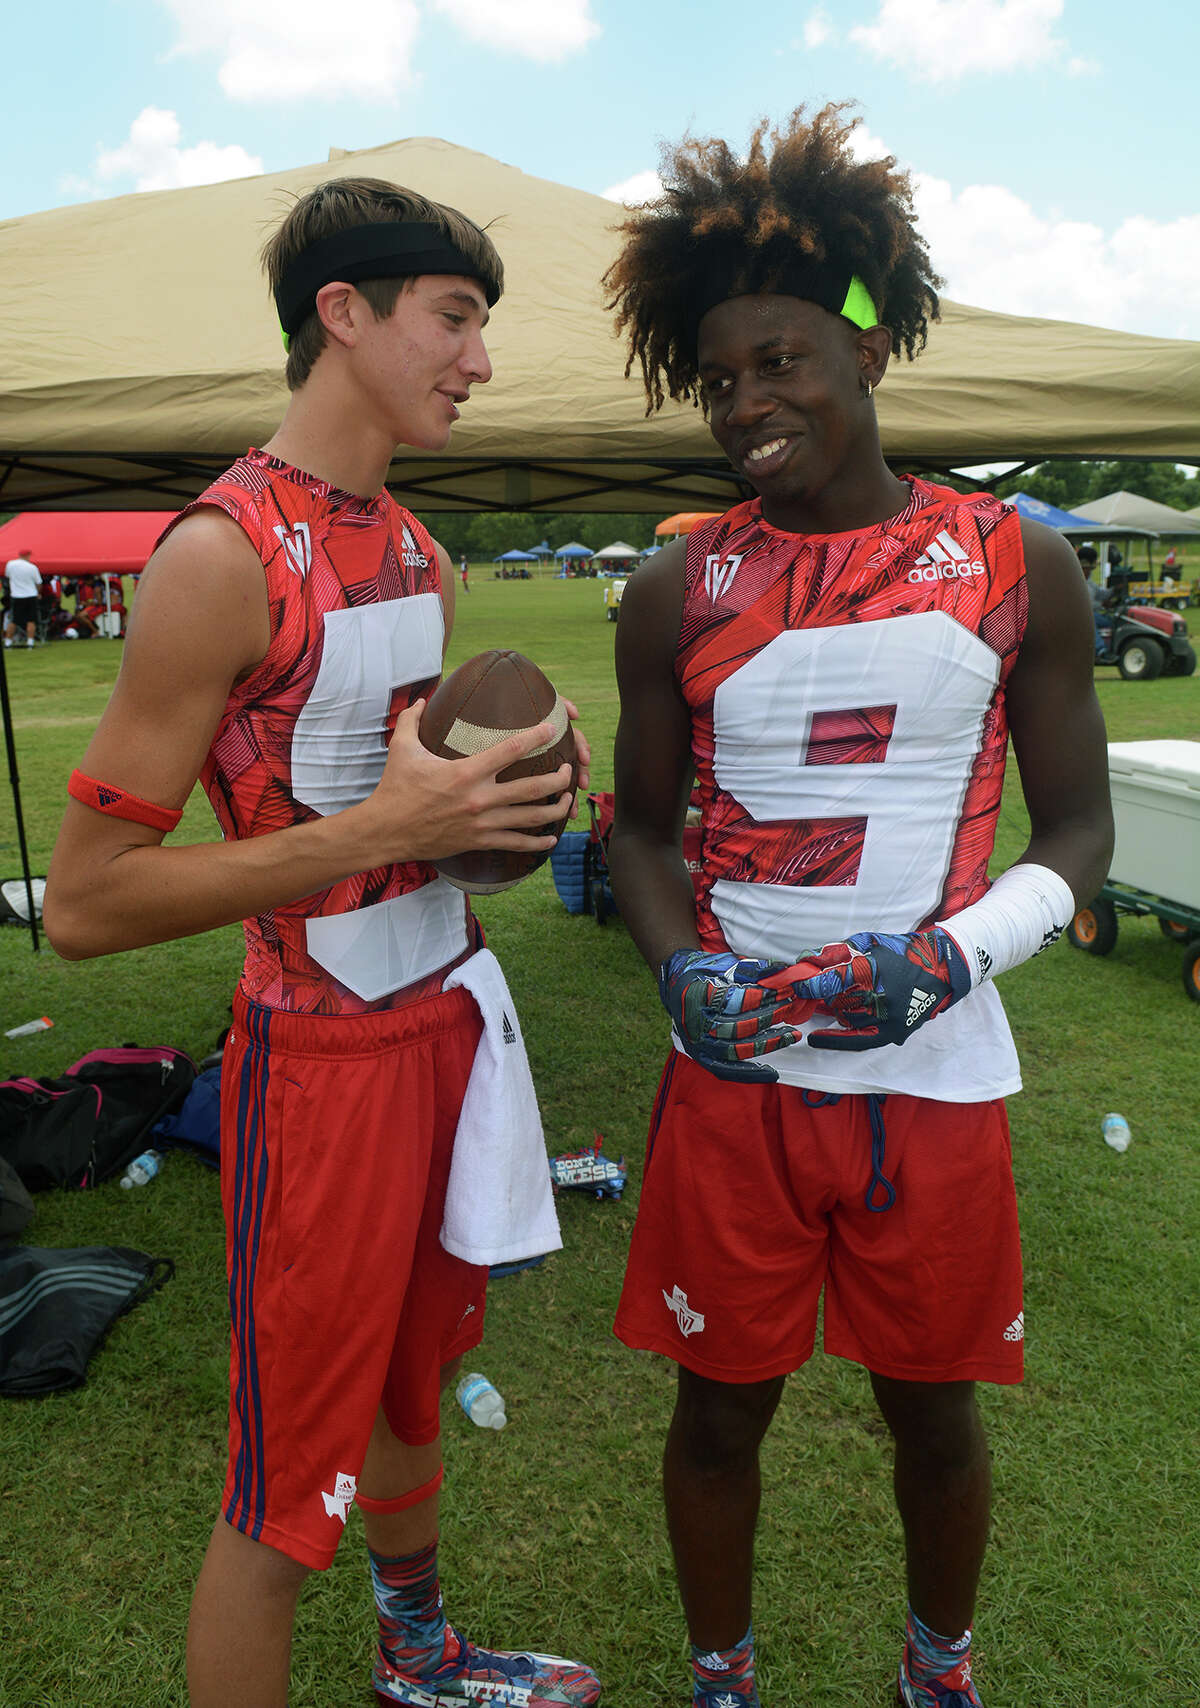 Dickinson senior quarterback Jordan Griggs, left, and sophomore wide receiver Malik Williams wait for the start of the 2nd half of their Division I pool game against Harker Heights at the 2016 Texas 7on7 Championships at Veterans Park and Athletic Complex in College Station on Friday, July 8, 2016. (Photo by Jerry Baker/Freelance)